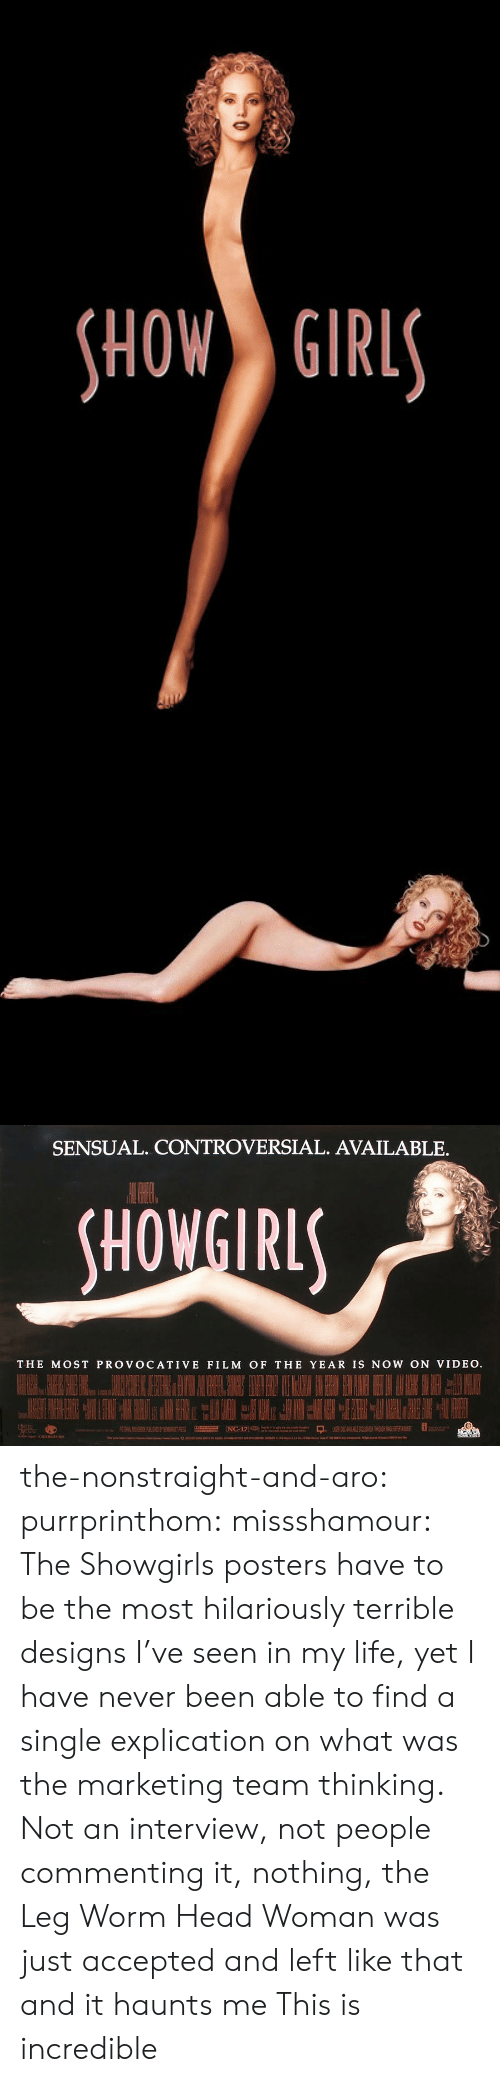 provocative: HOW GIRL   SENSUAL. CONTROVERSIAL. AVAILABLE.  HOWGIRL  THE MOST PROVOCATIVE FILM OF THE YEAR IS NOW ON VIDEO the-nonstraight-and-aro: purrprinthom:  missshamour:  The Showgirls posters have to be the most hilariously terrible designs I've seen in my life, yet I have never been able to find a single explication on what was the marketing team thinking. Not an interview, not people commenting it, nothing, the Leg Worm Head Woman was just accepted and left like that and it haunts me  This is incredible